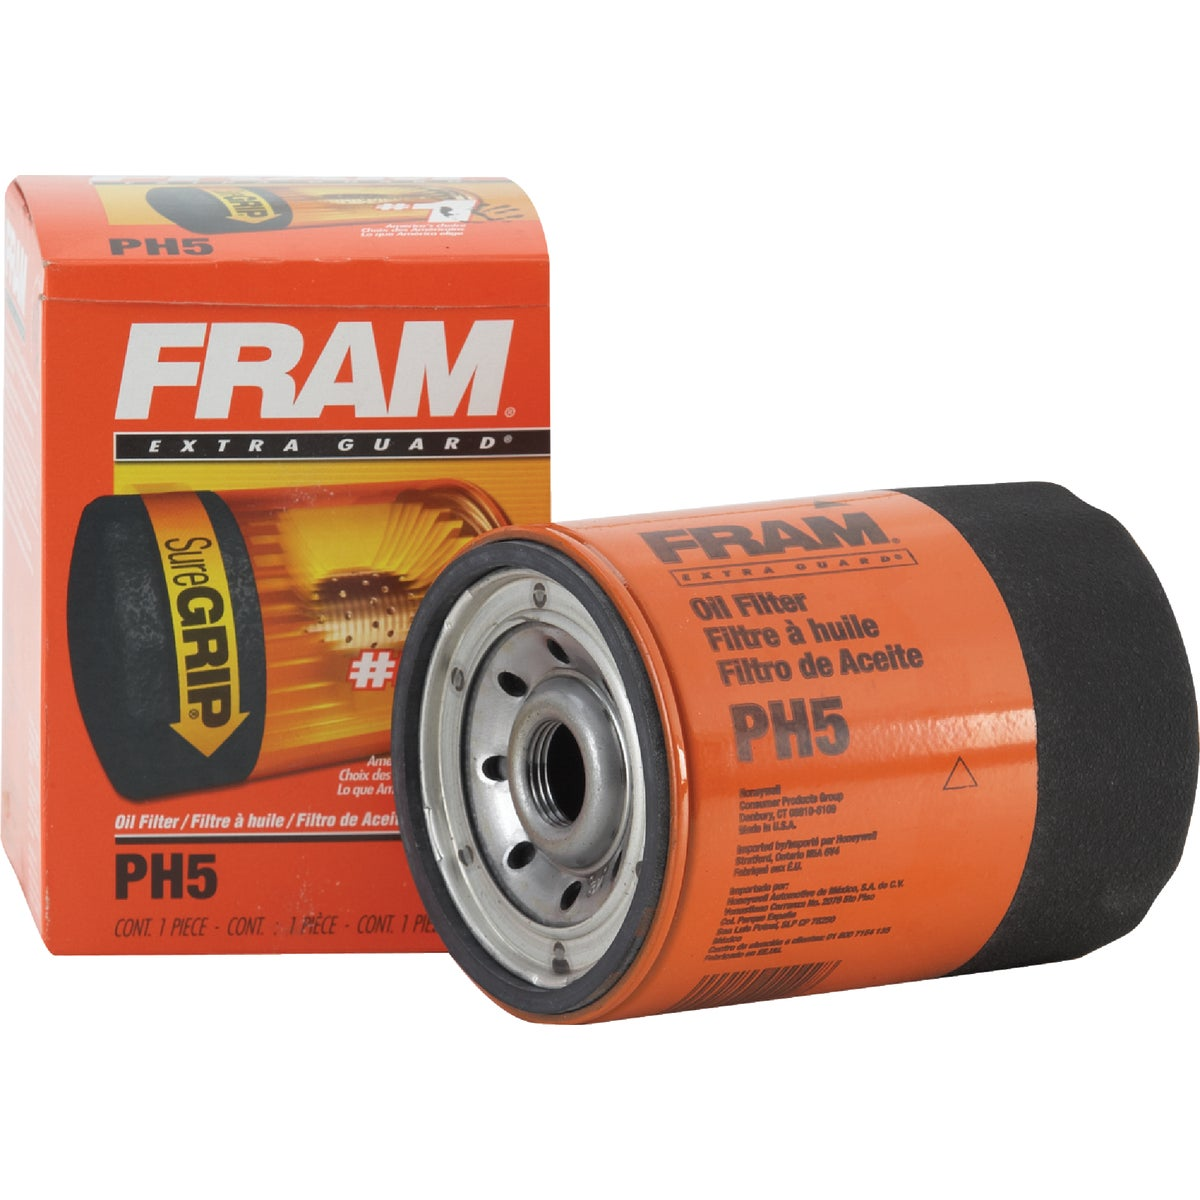 OIL FILTER - PH5 by Fram Group